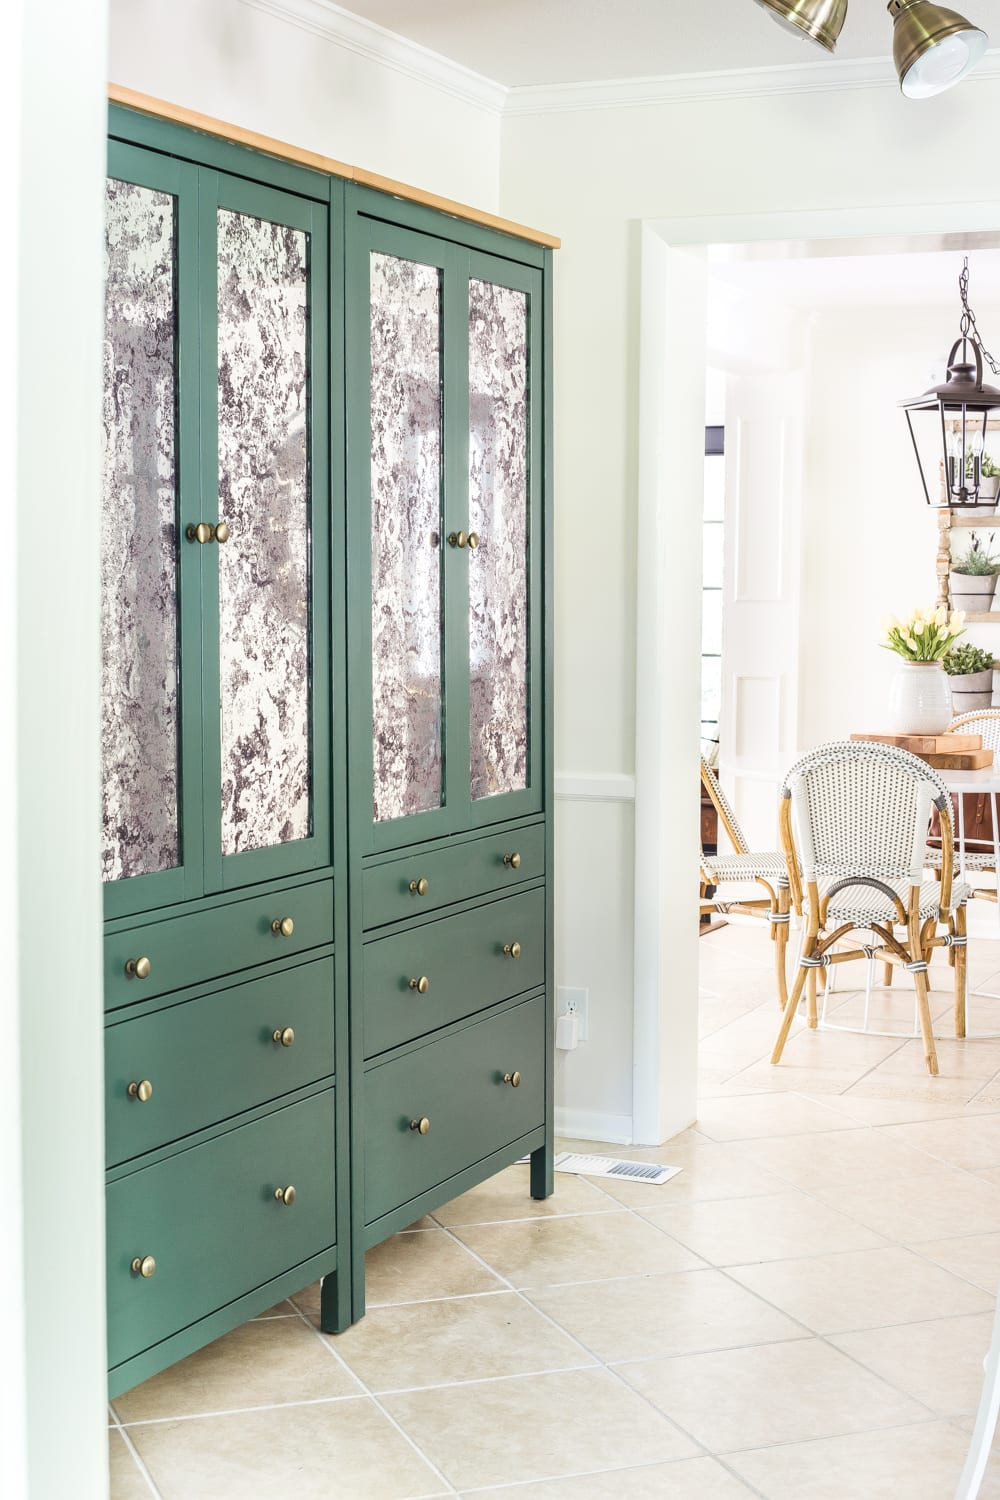 DIY IKEA Hemnes Pantry Cabinet | blesserhouse.com - antique mirror window film and Sherwin Williams Billiard